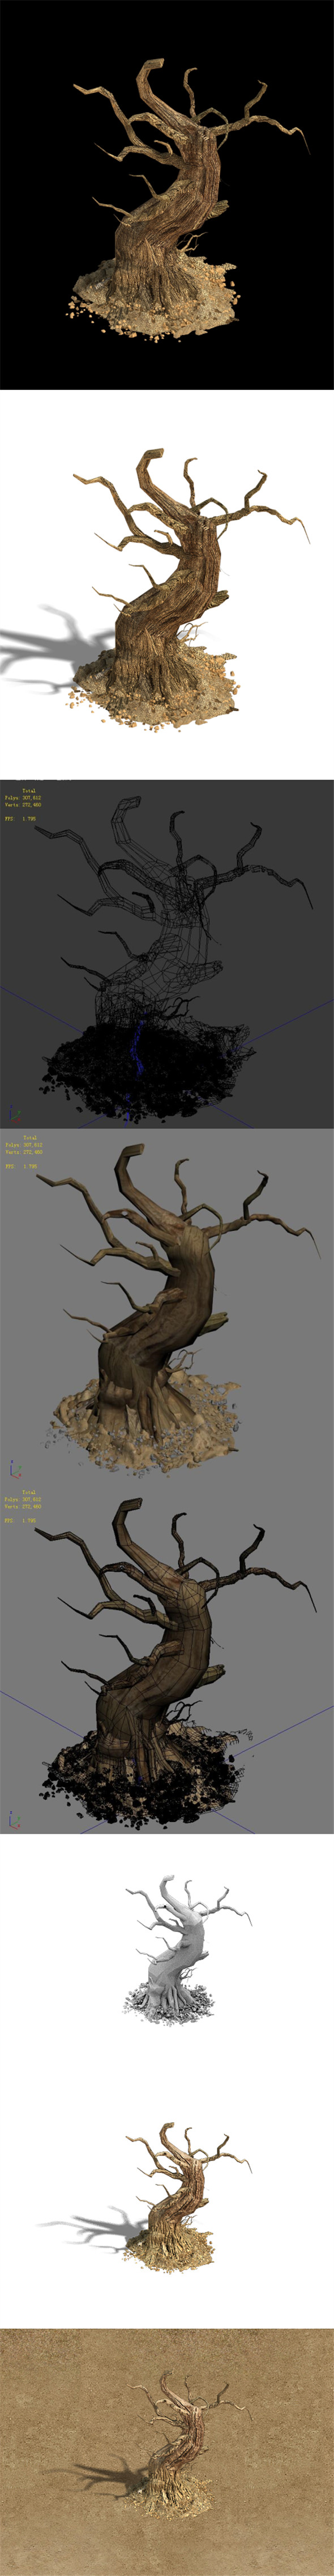 Barracks - desert Dead tree 05 - 3DOcean Item for Sale